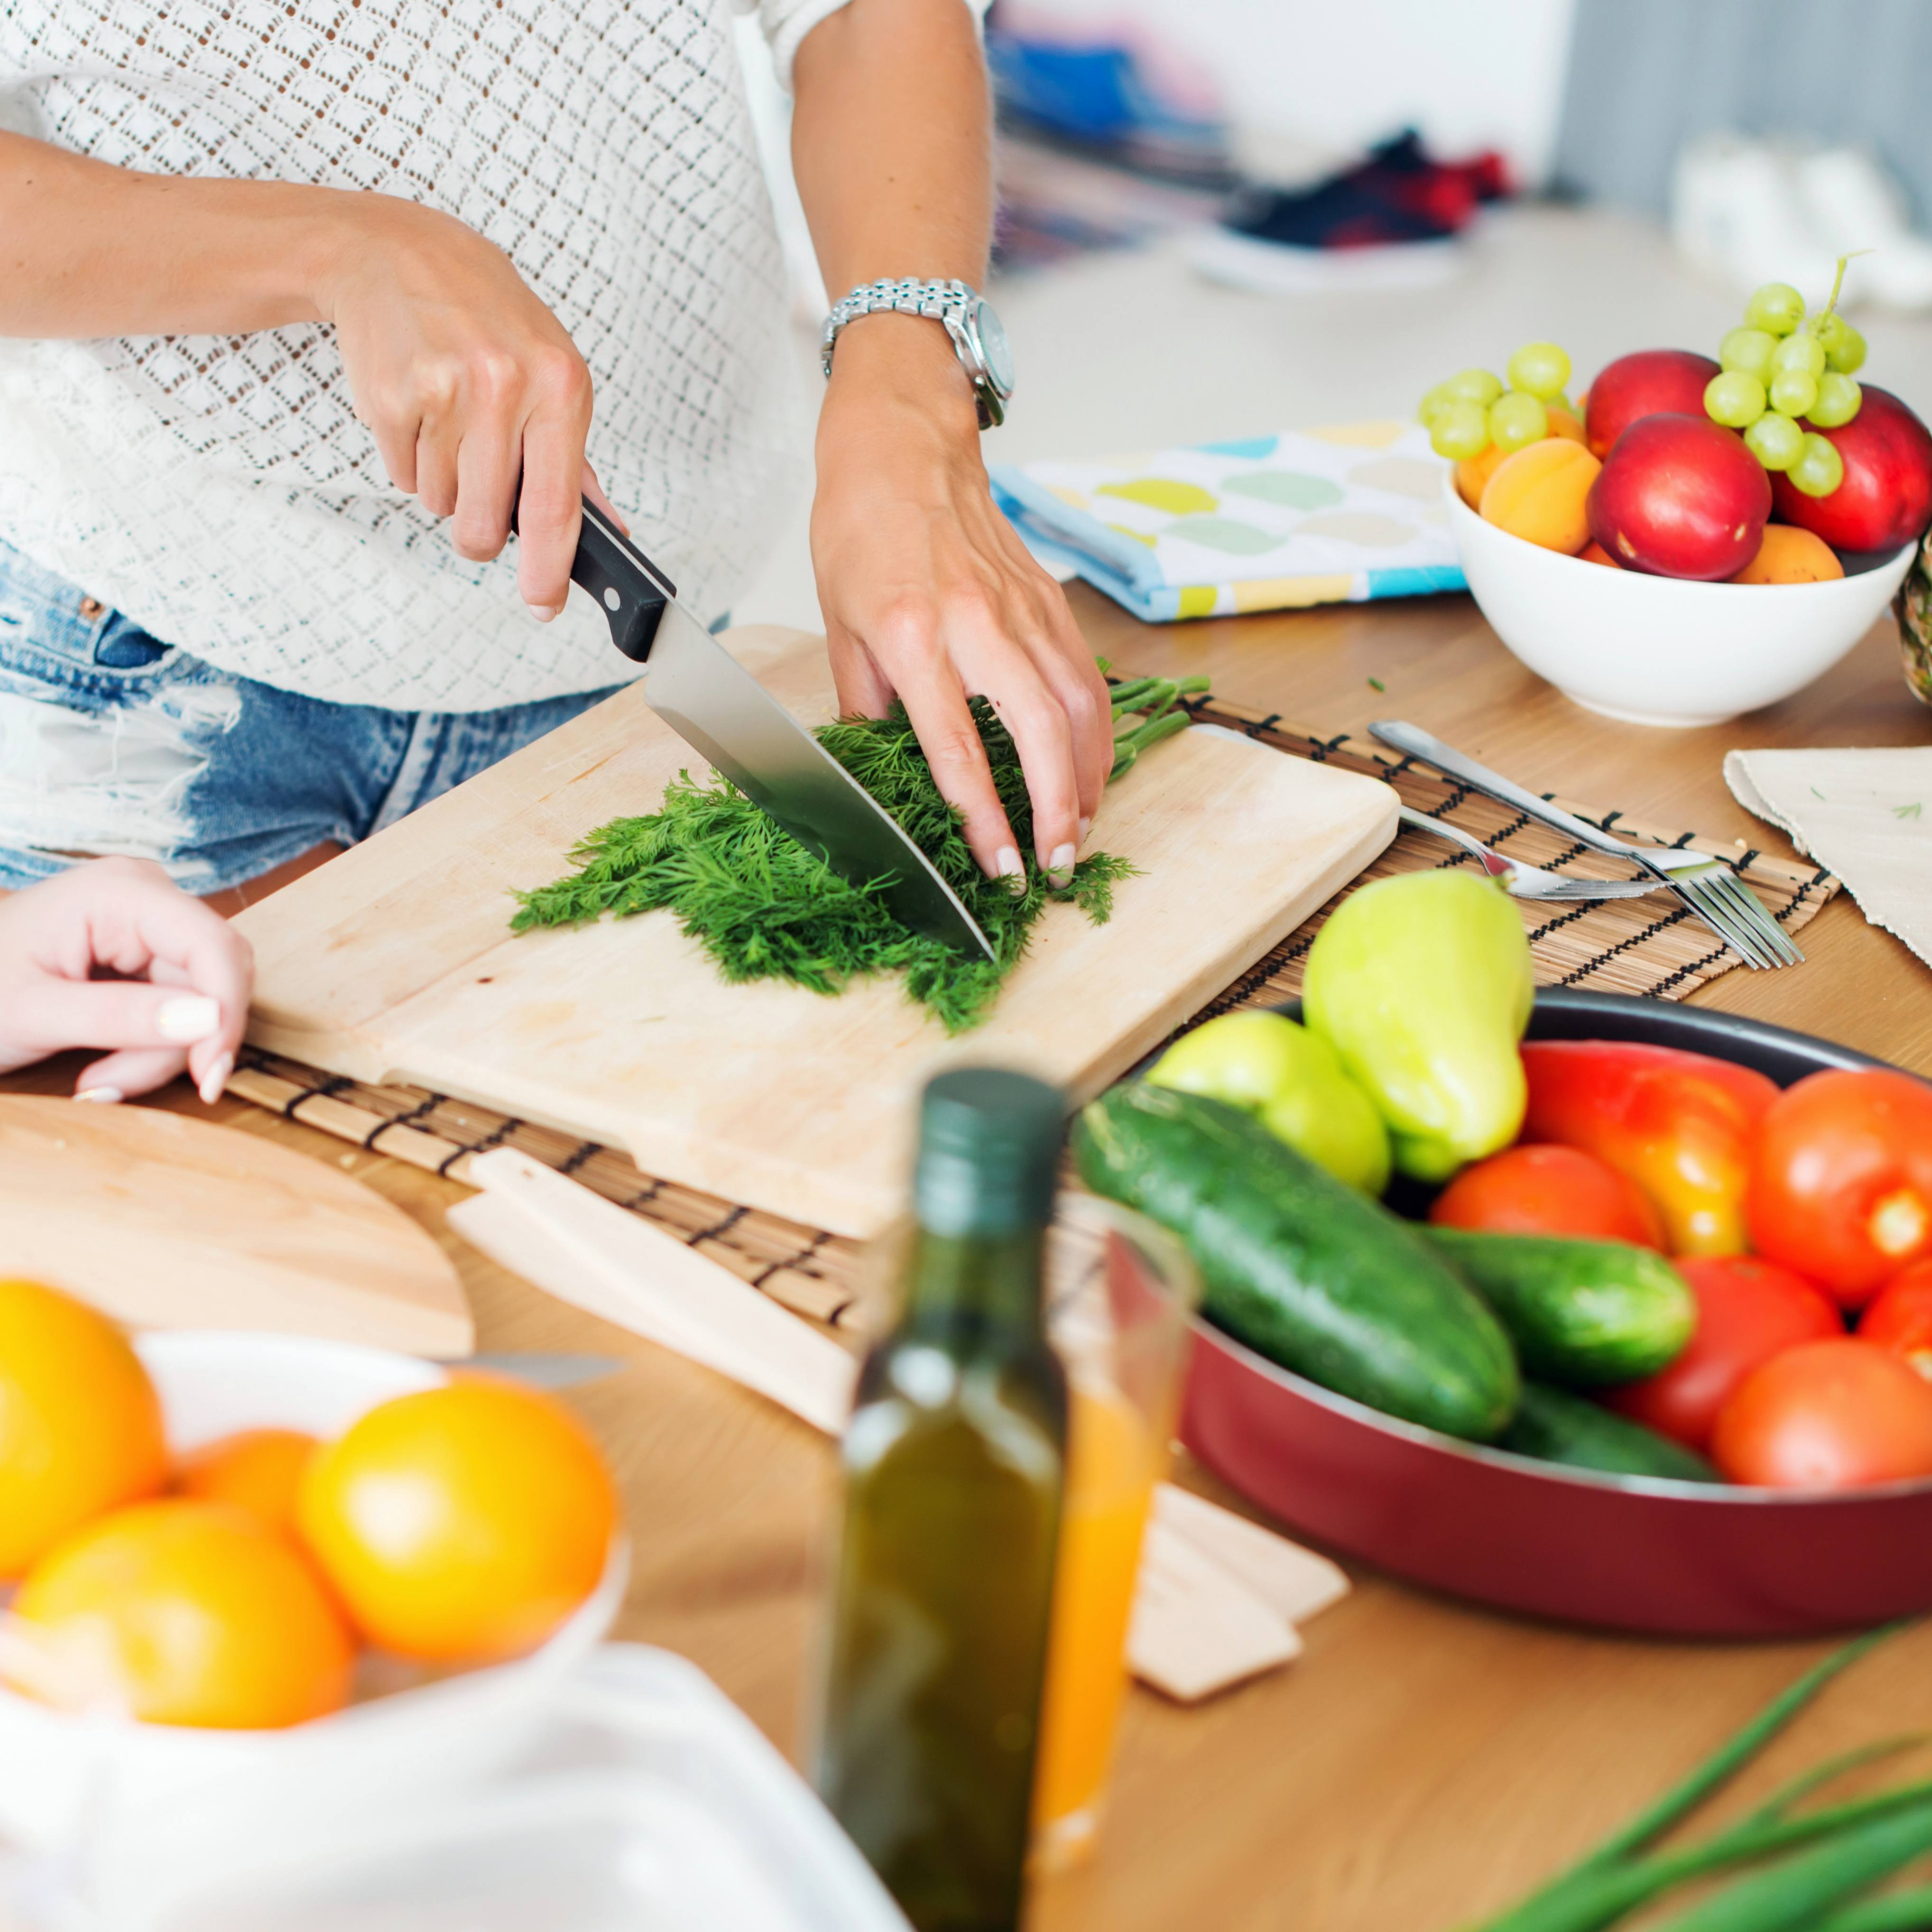 a woman slicing and cutting up fresh fruits and vegetables on a kitchen counter